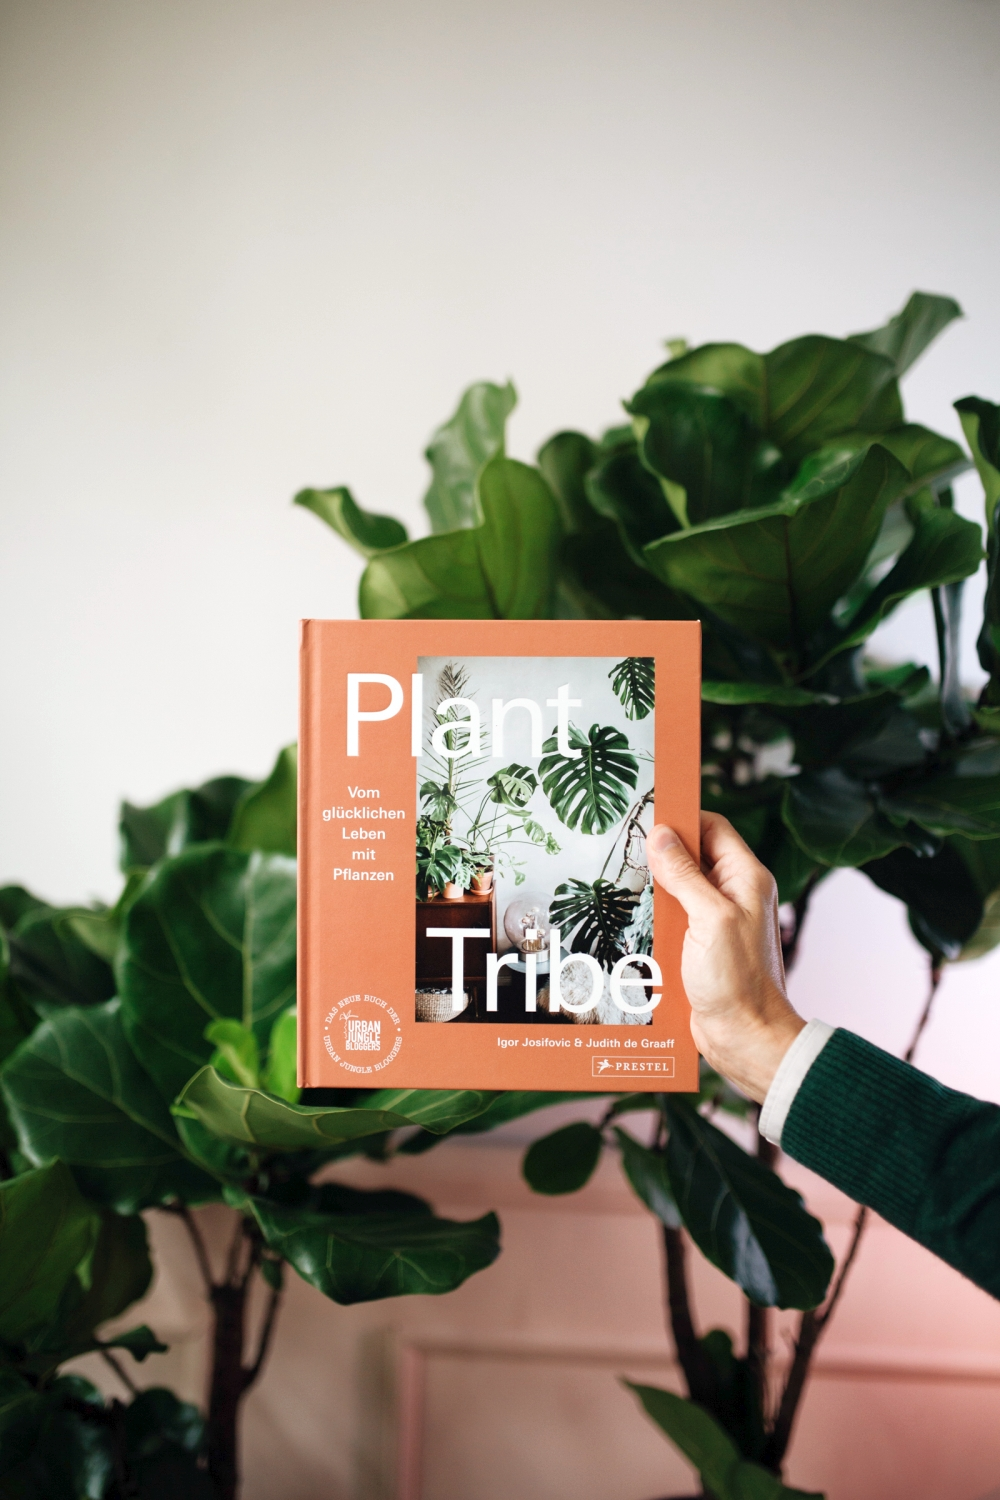 Plant Tribe book launch event at Maison Palme in Berlin